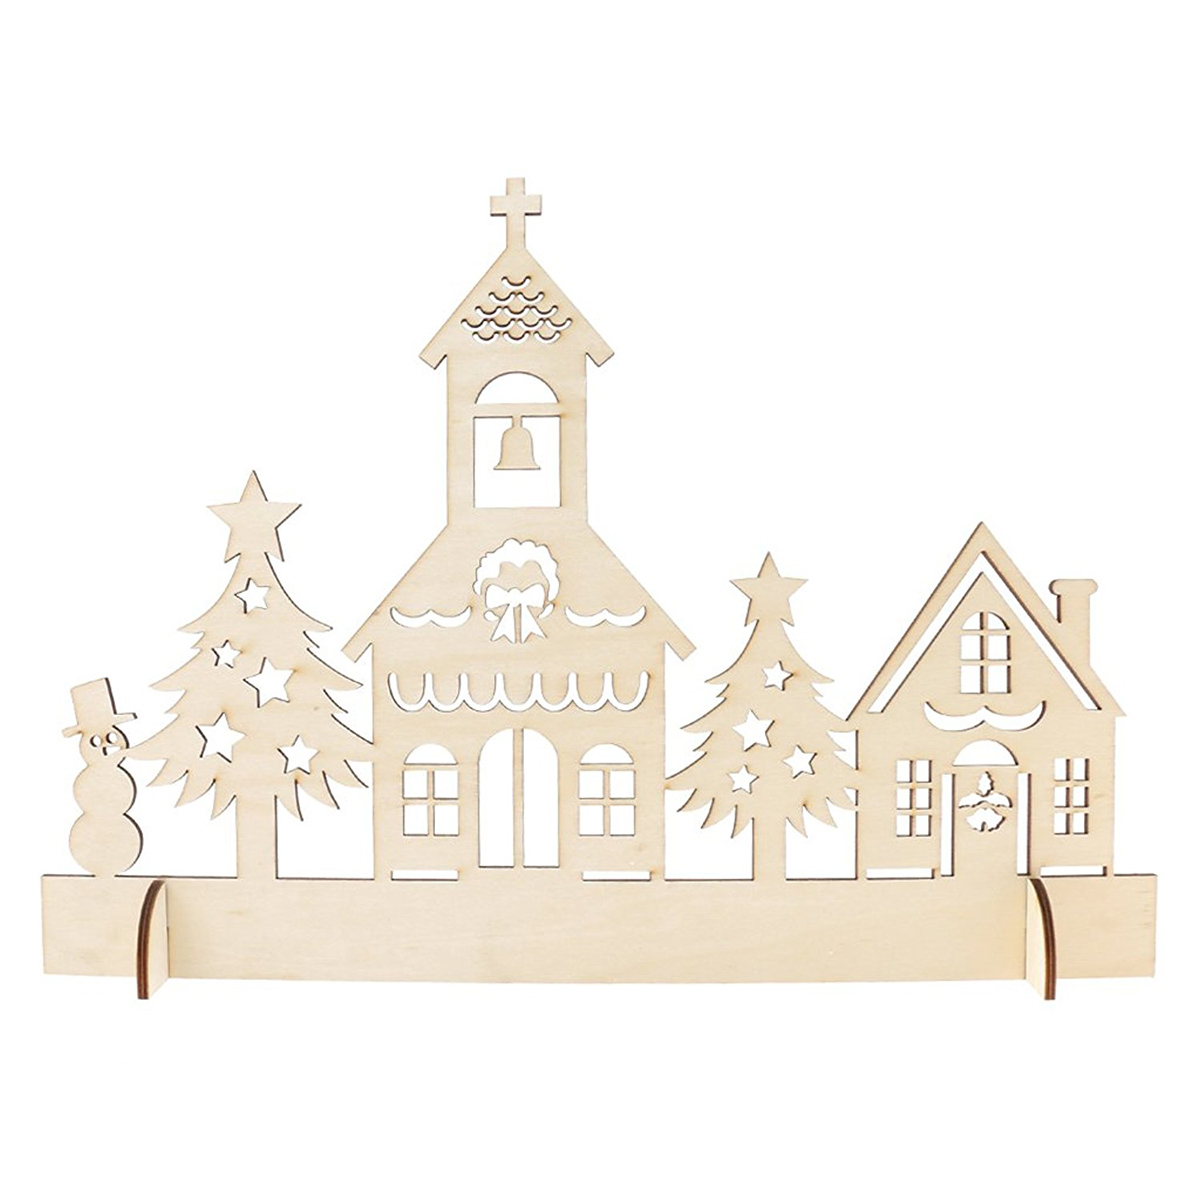 Wooden Christmas Decor Woodland Church Ornament Handcraft for Christmas New Year Decoration(China (Mainland))